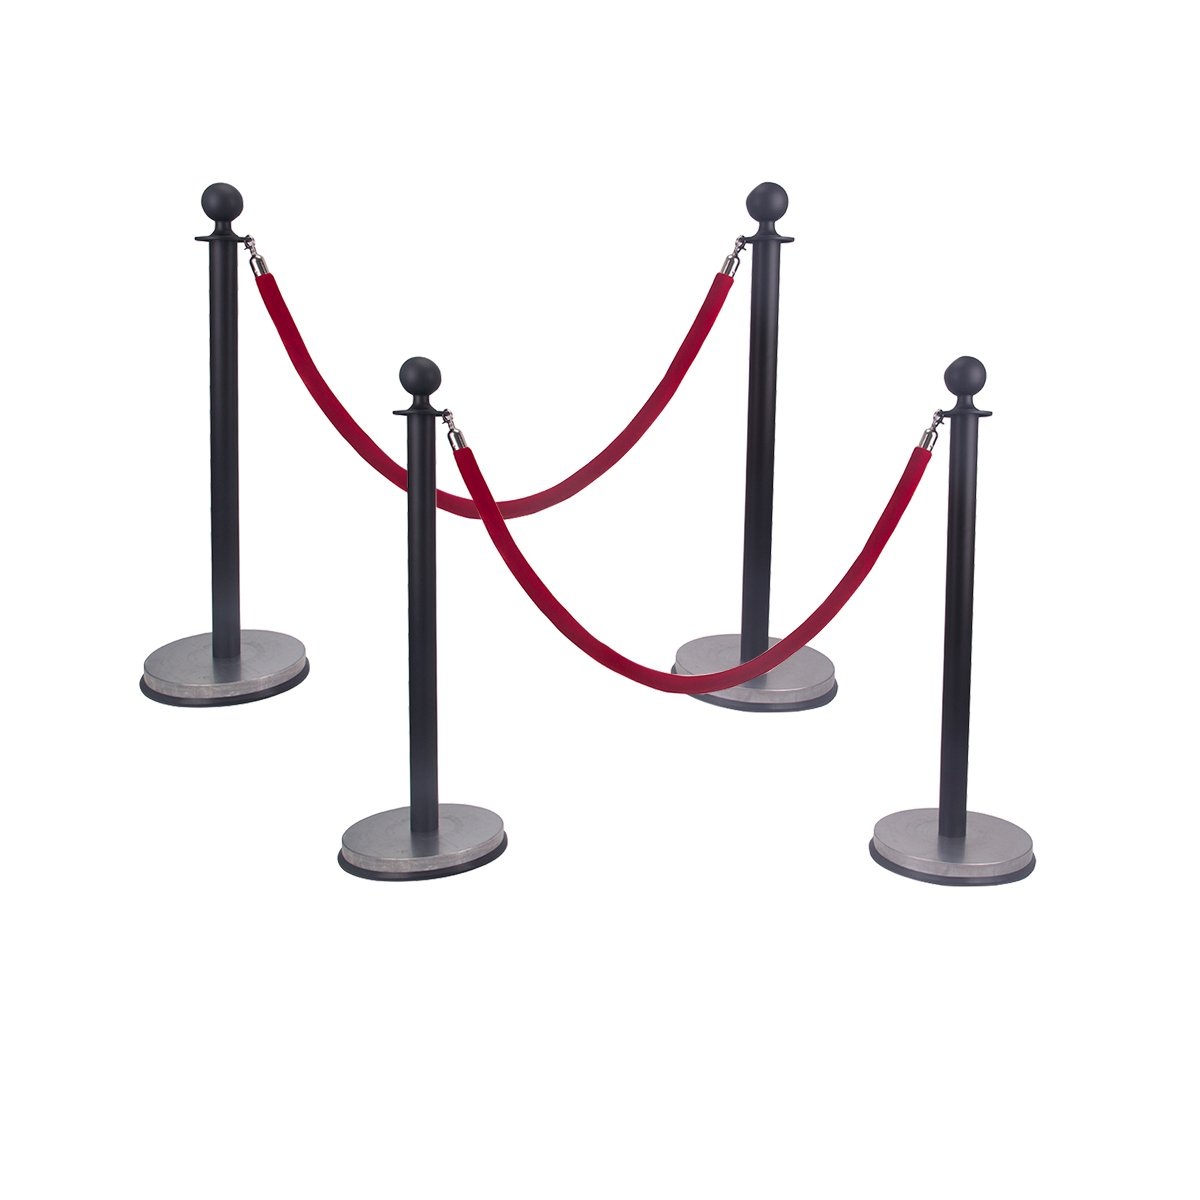 Comie Ball Top Stainless Steel Retractable Stanchion Posts with a Red Velvet Rope Black